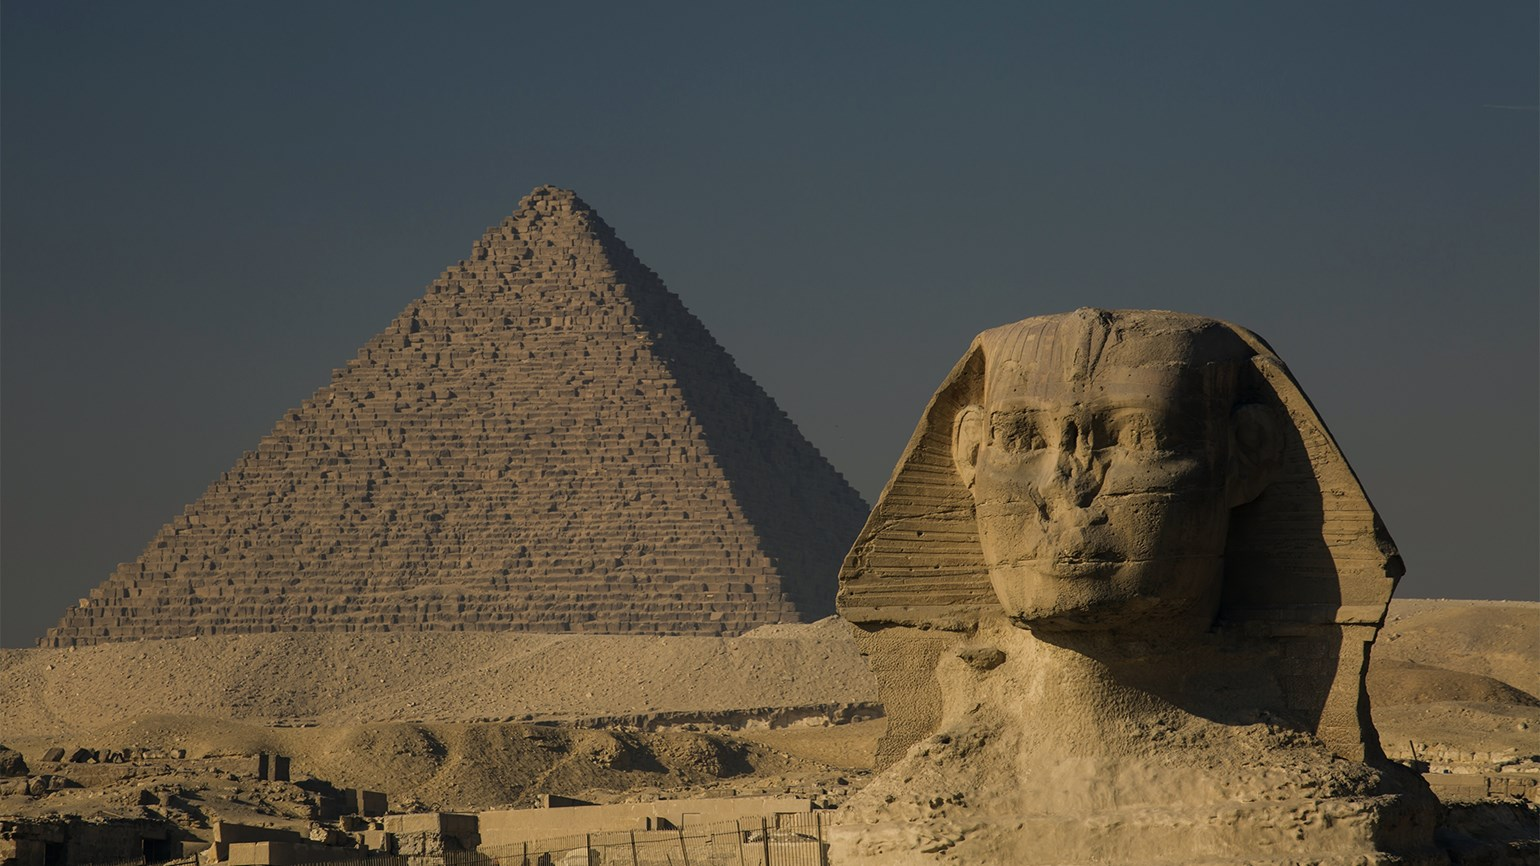 Egypt has booking upswing after rough period